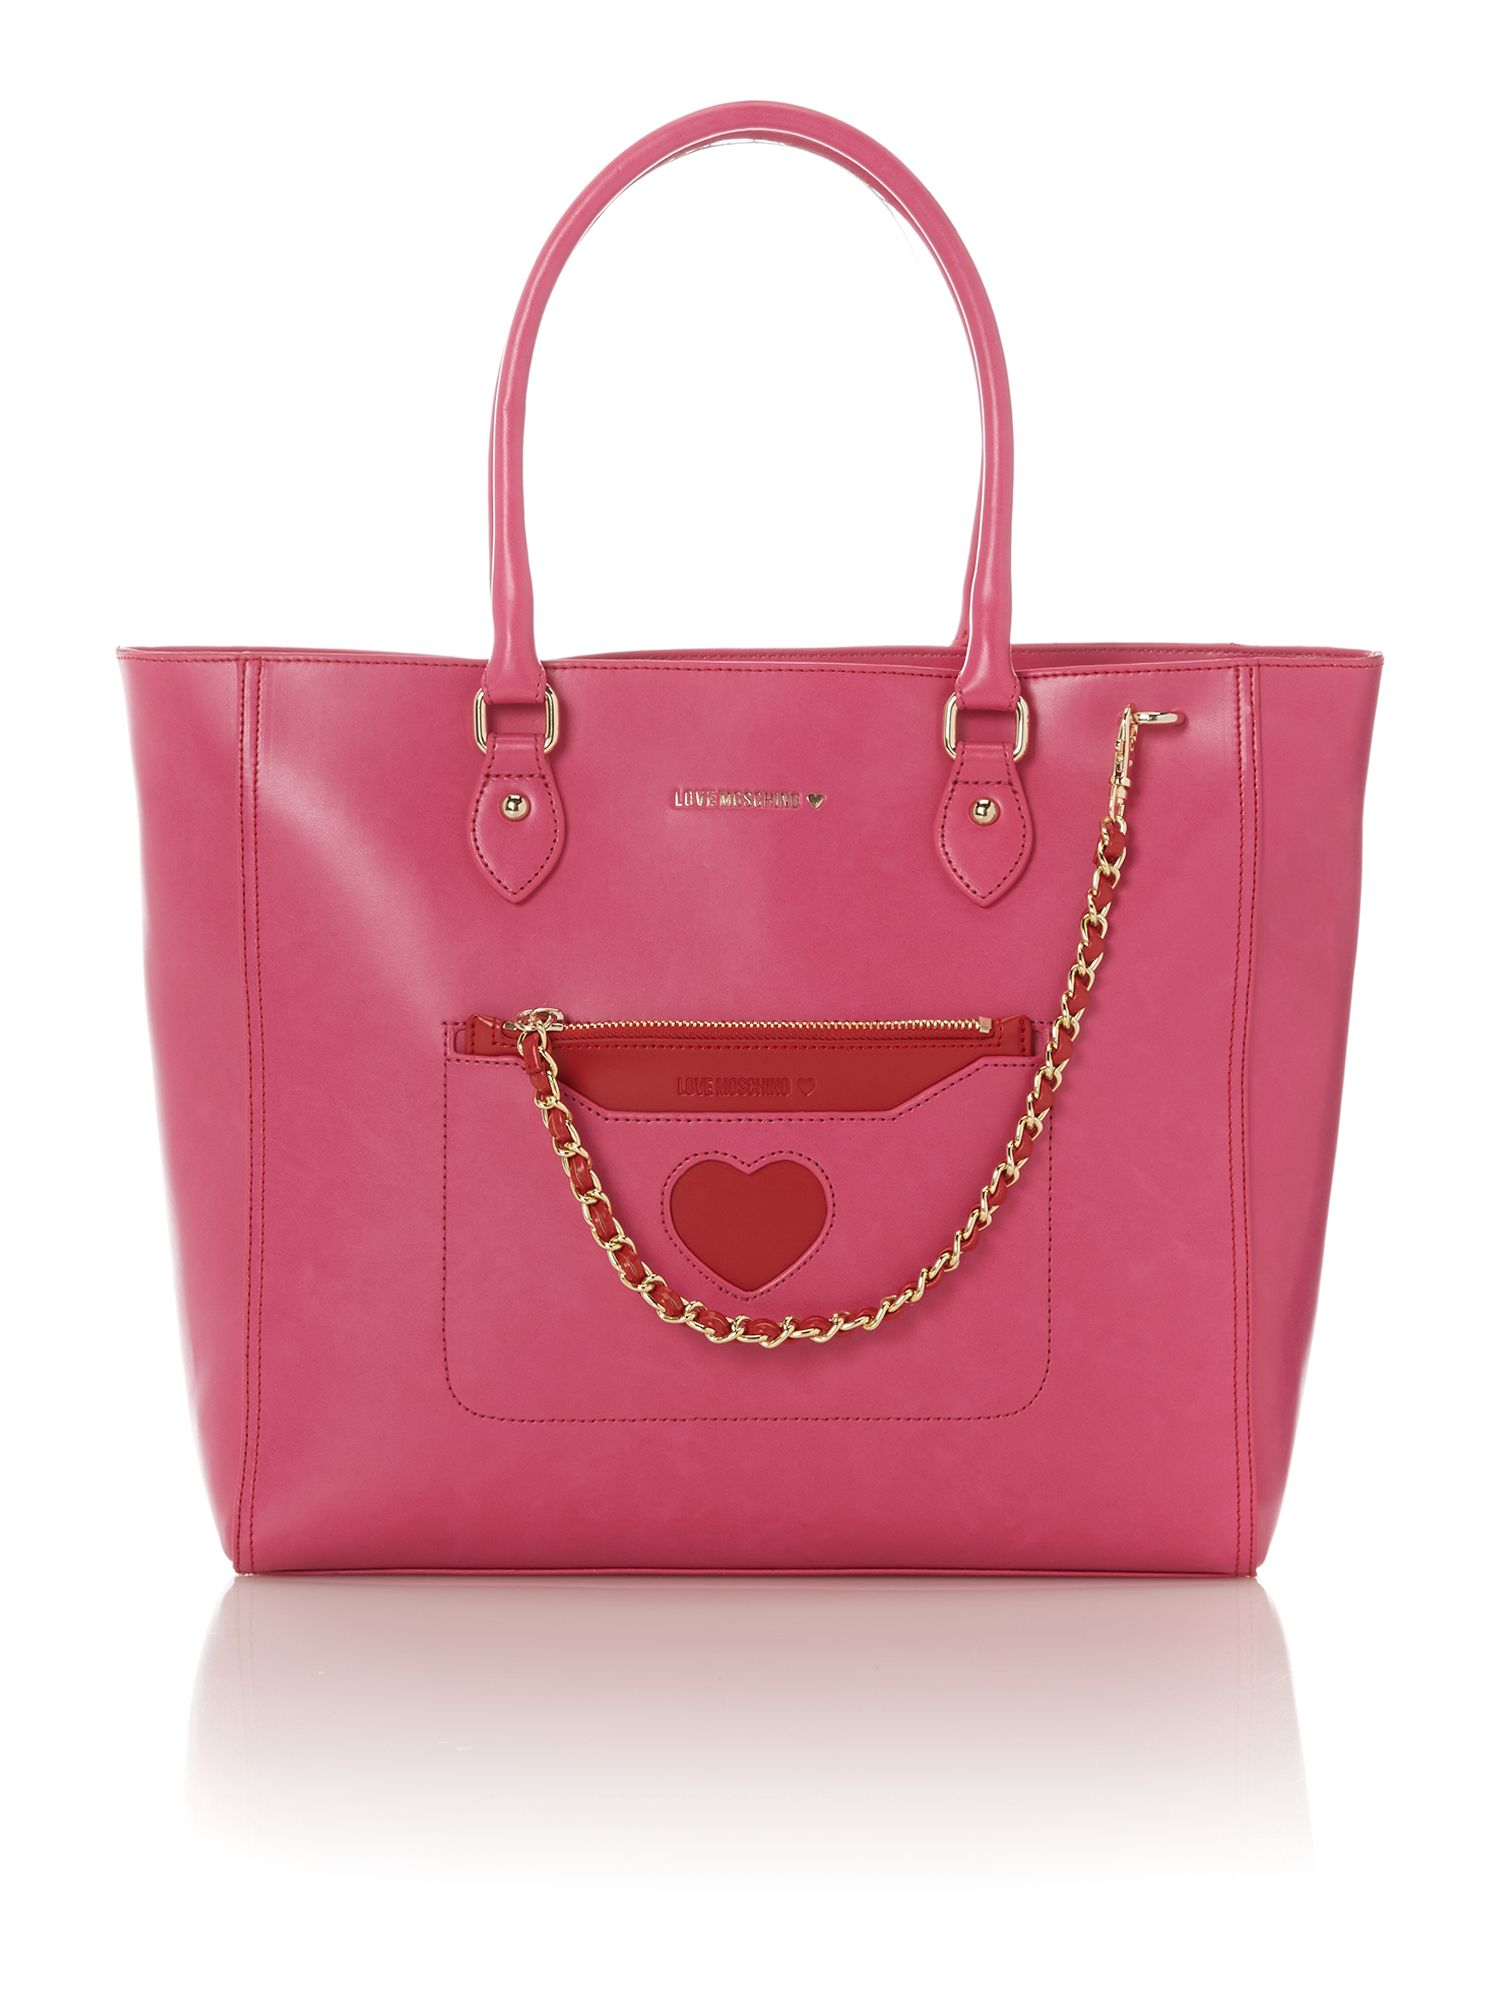 Pink large cut-out tote bag